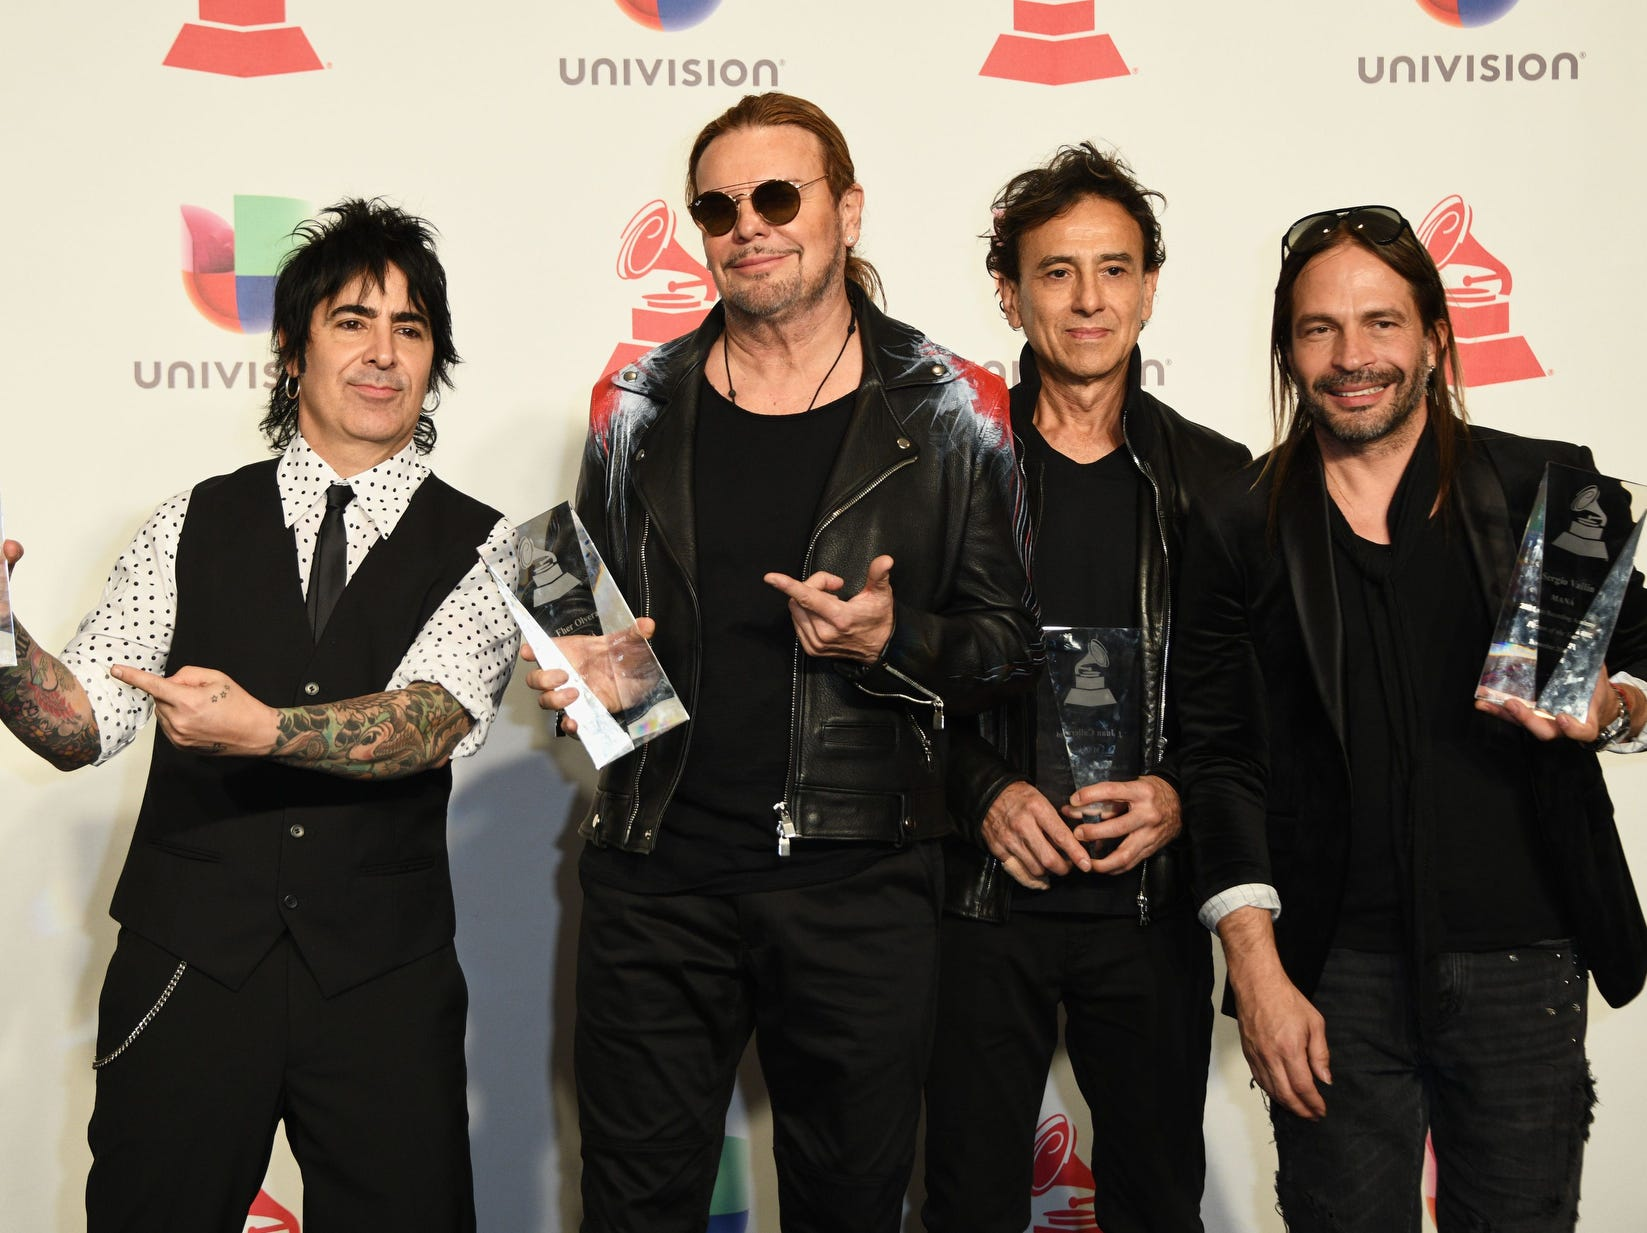 Members of Mexican rock band Mana Fher Olvera, Alex Gonzalez, Sergio Vallin and Juan Calleros poses with their Person of the Year awards.